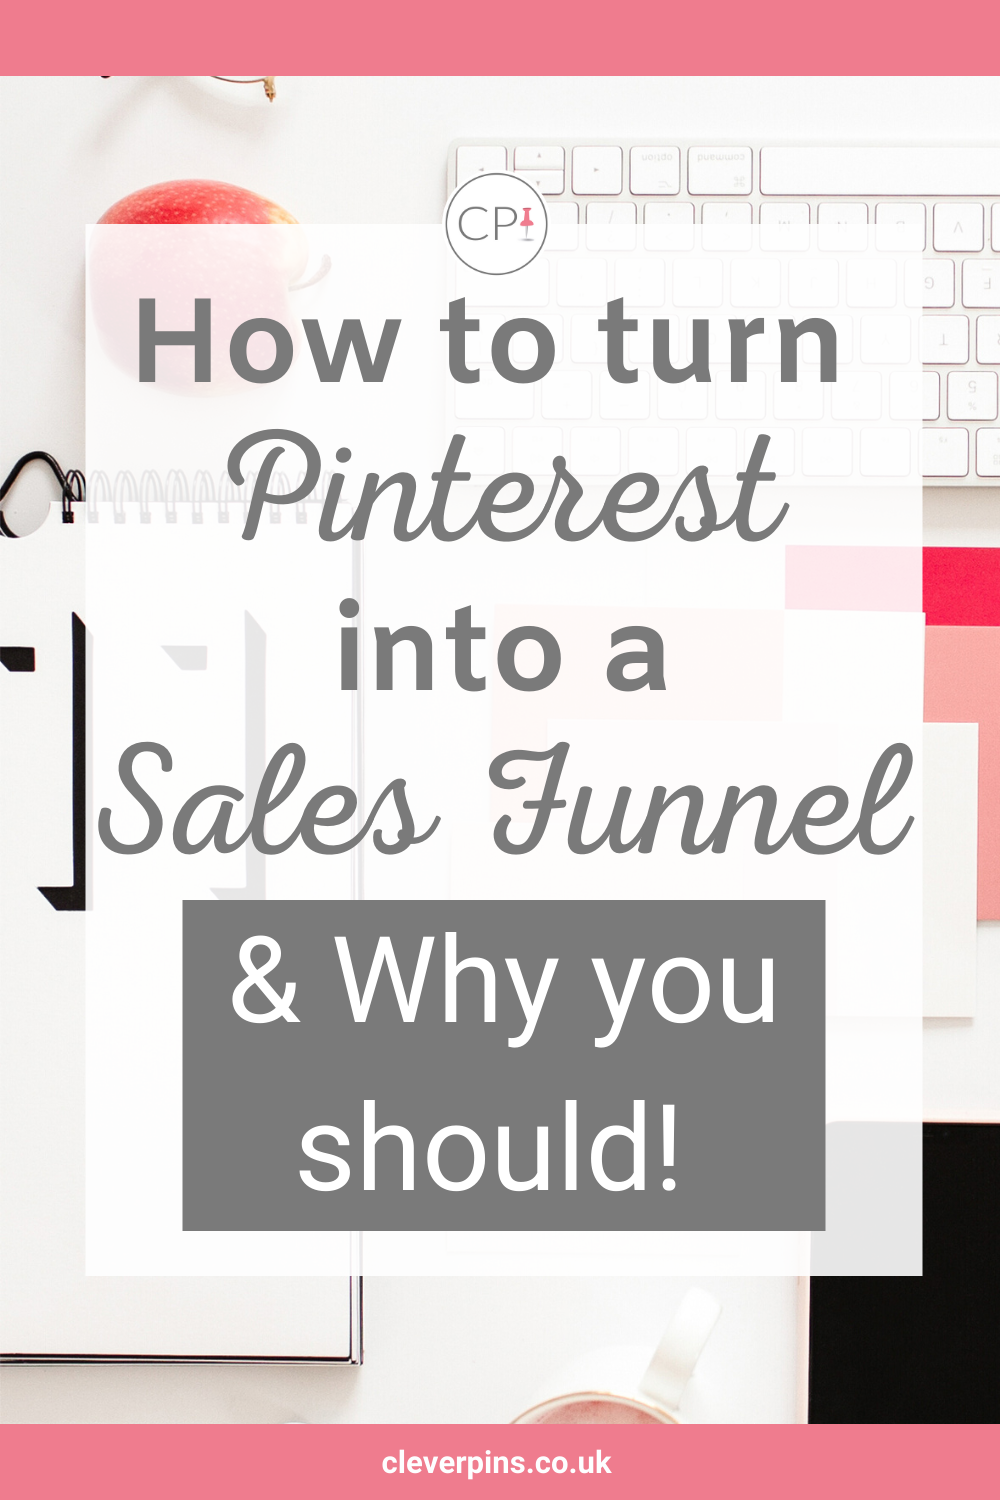 How To Turn Pinterest Into a Sales Funnel